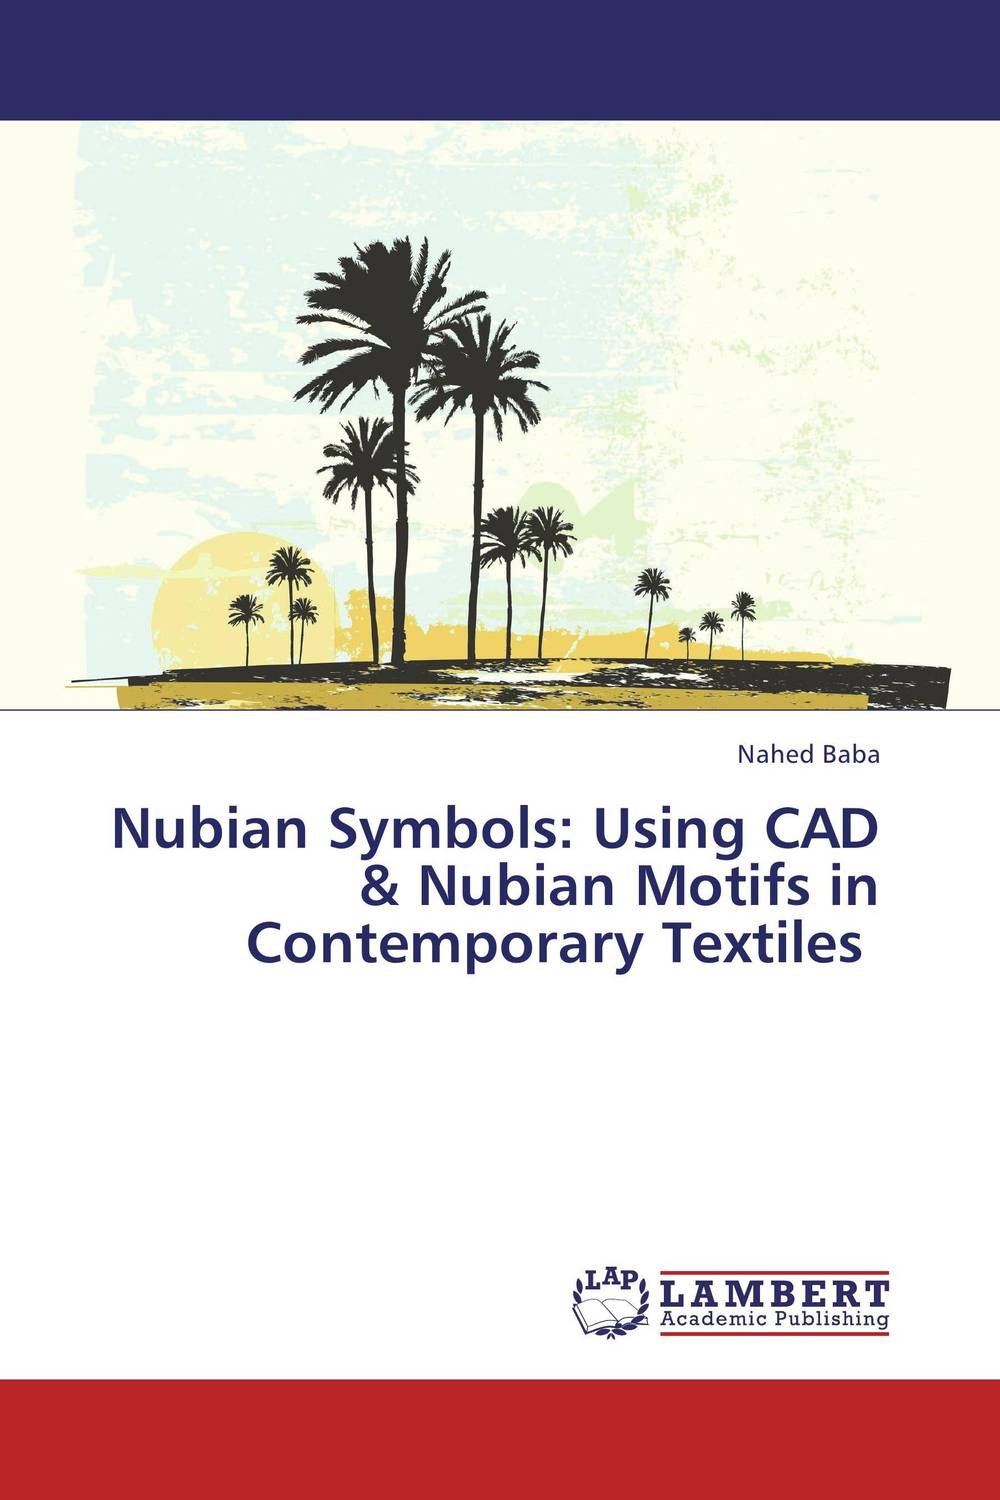 Nubian Symbols: Using CAD & Nubian Motifs in Contemporary Textiles